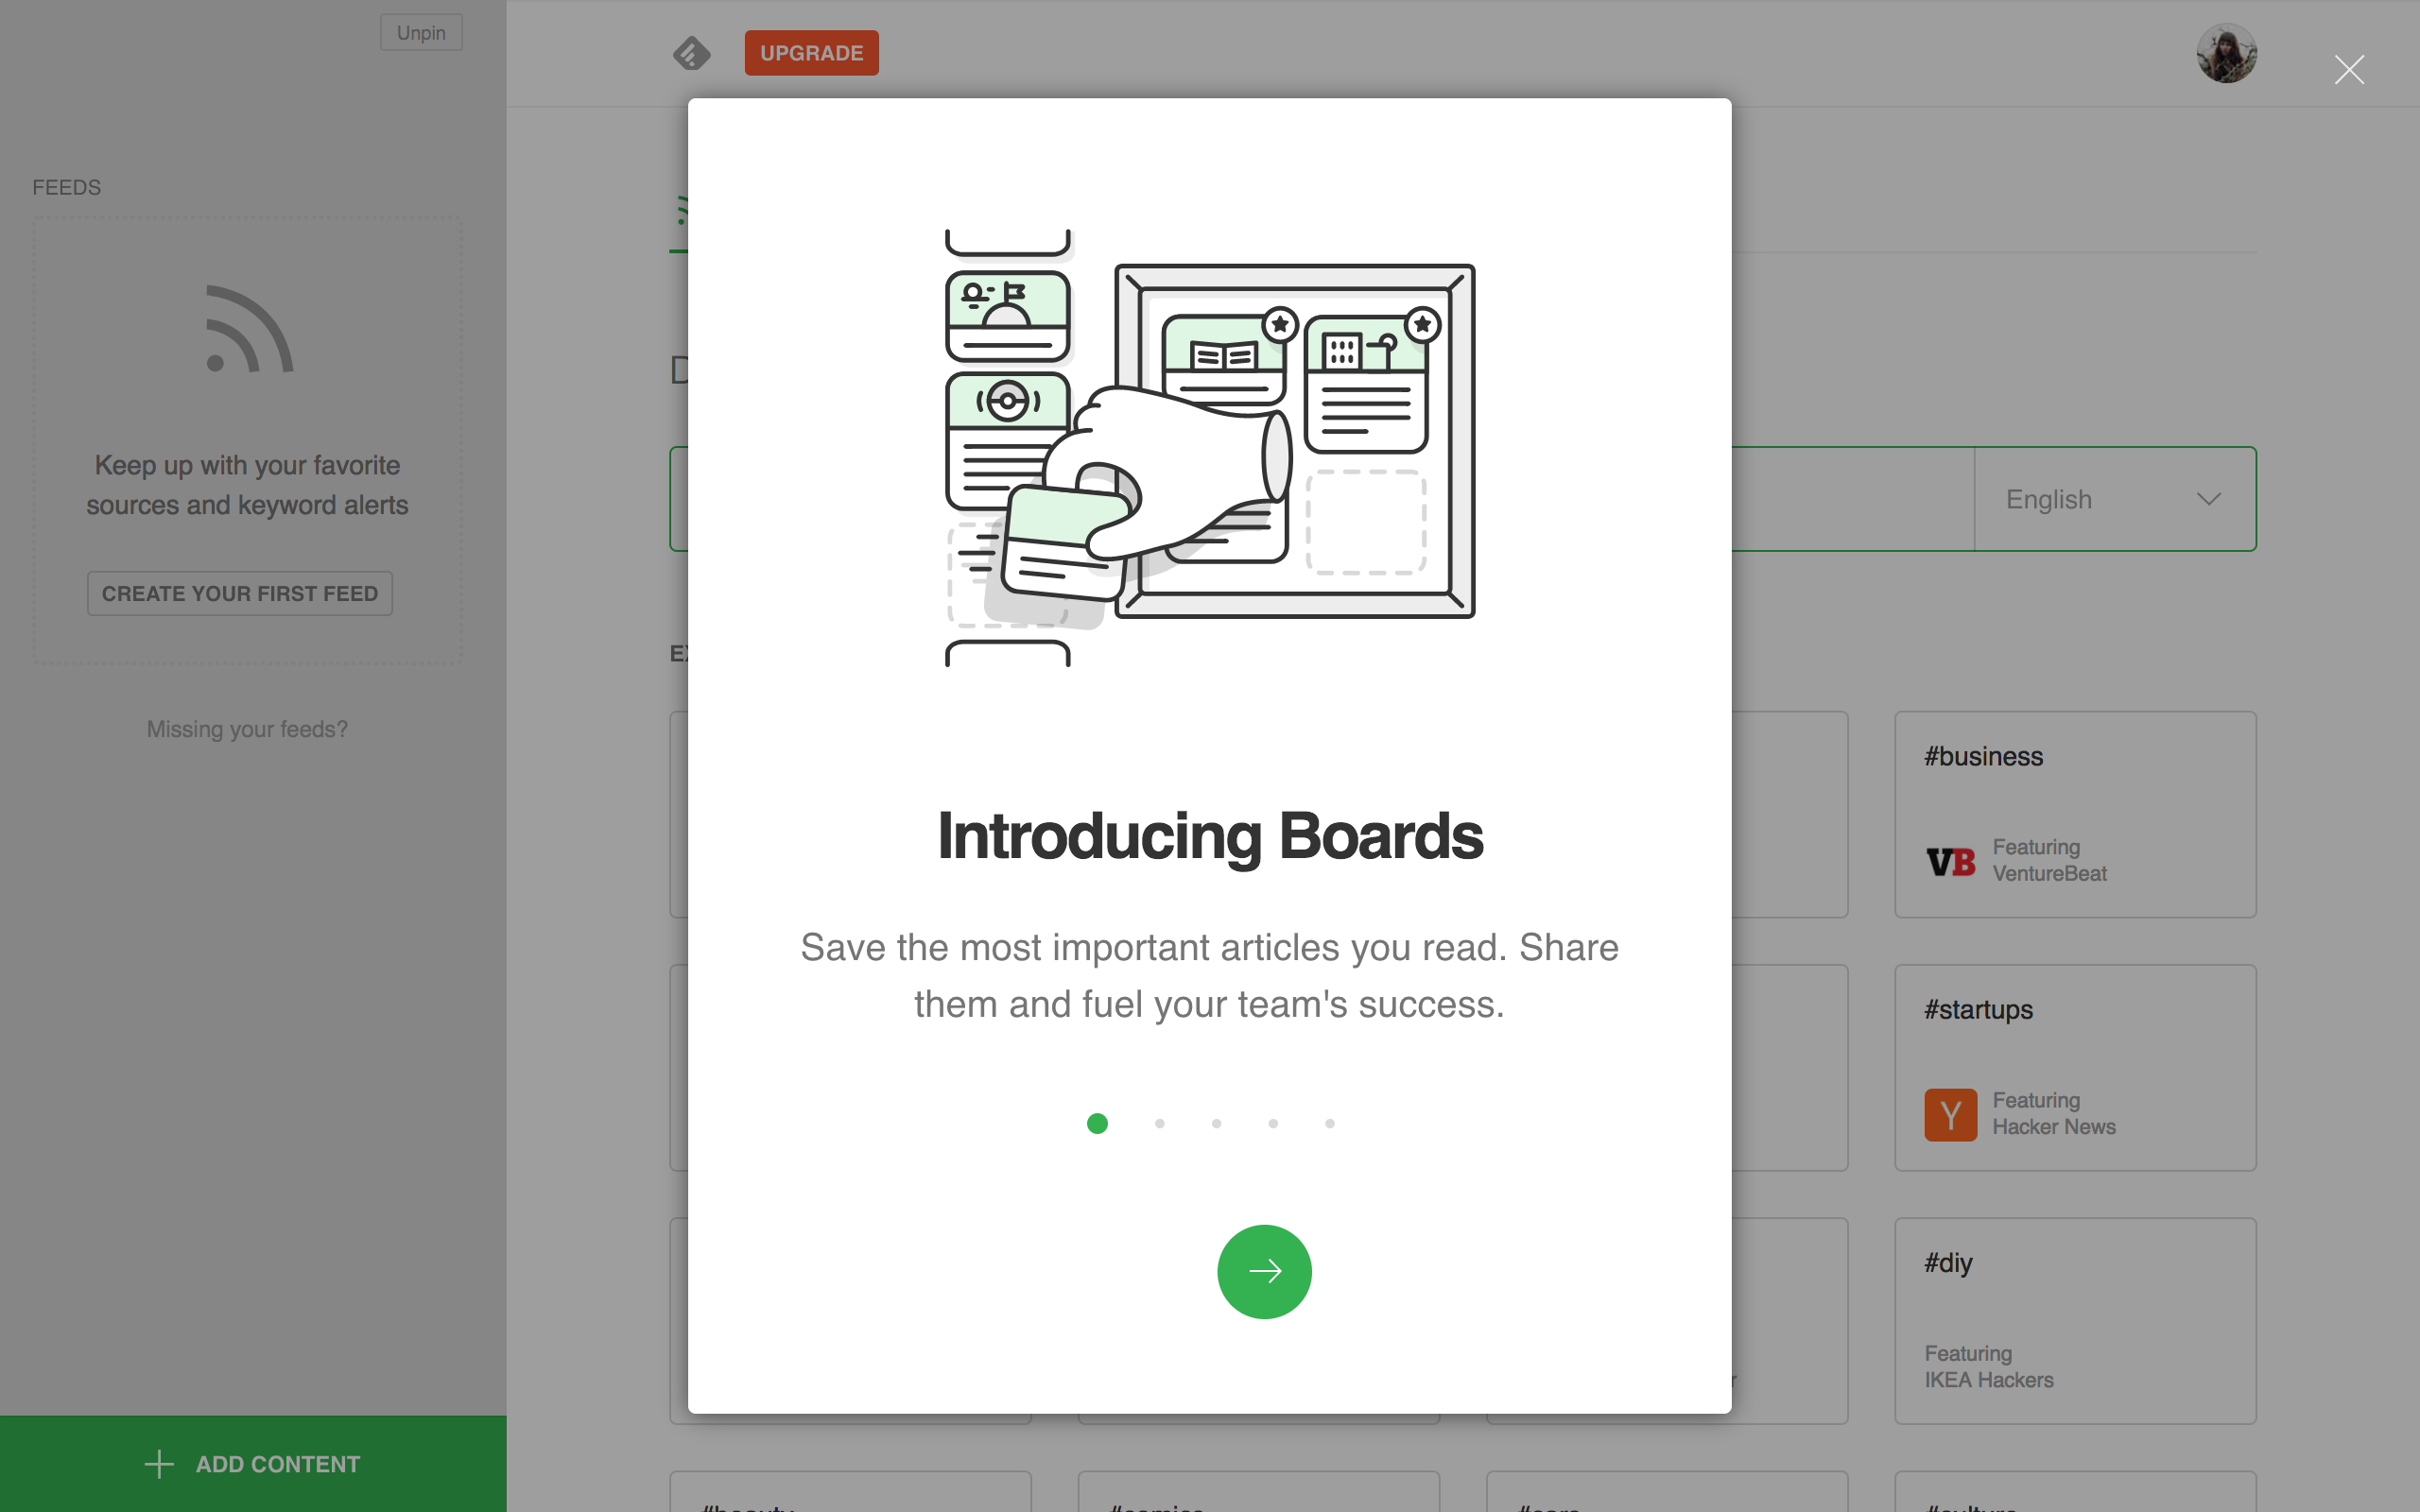 A screenshot of a feature announcement modal overlayed on Feedly's product page